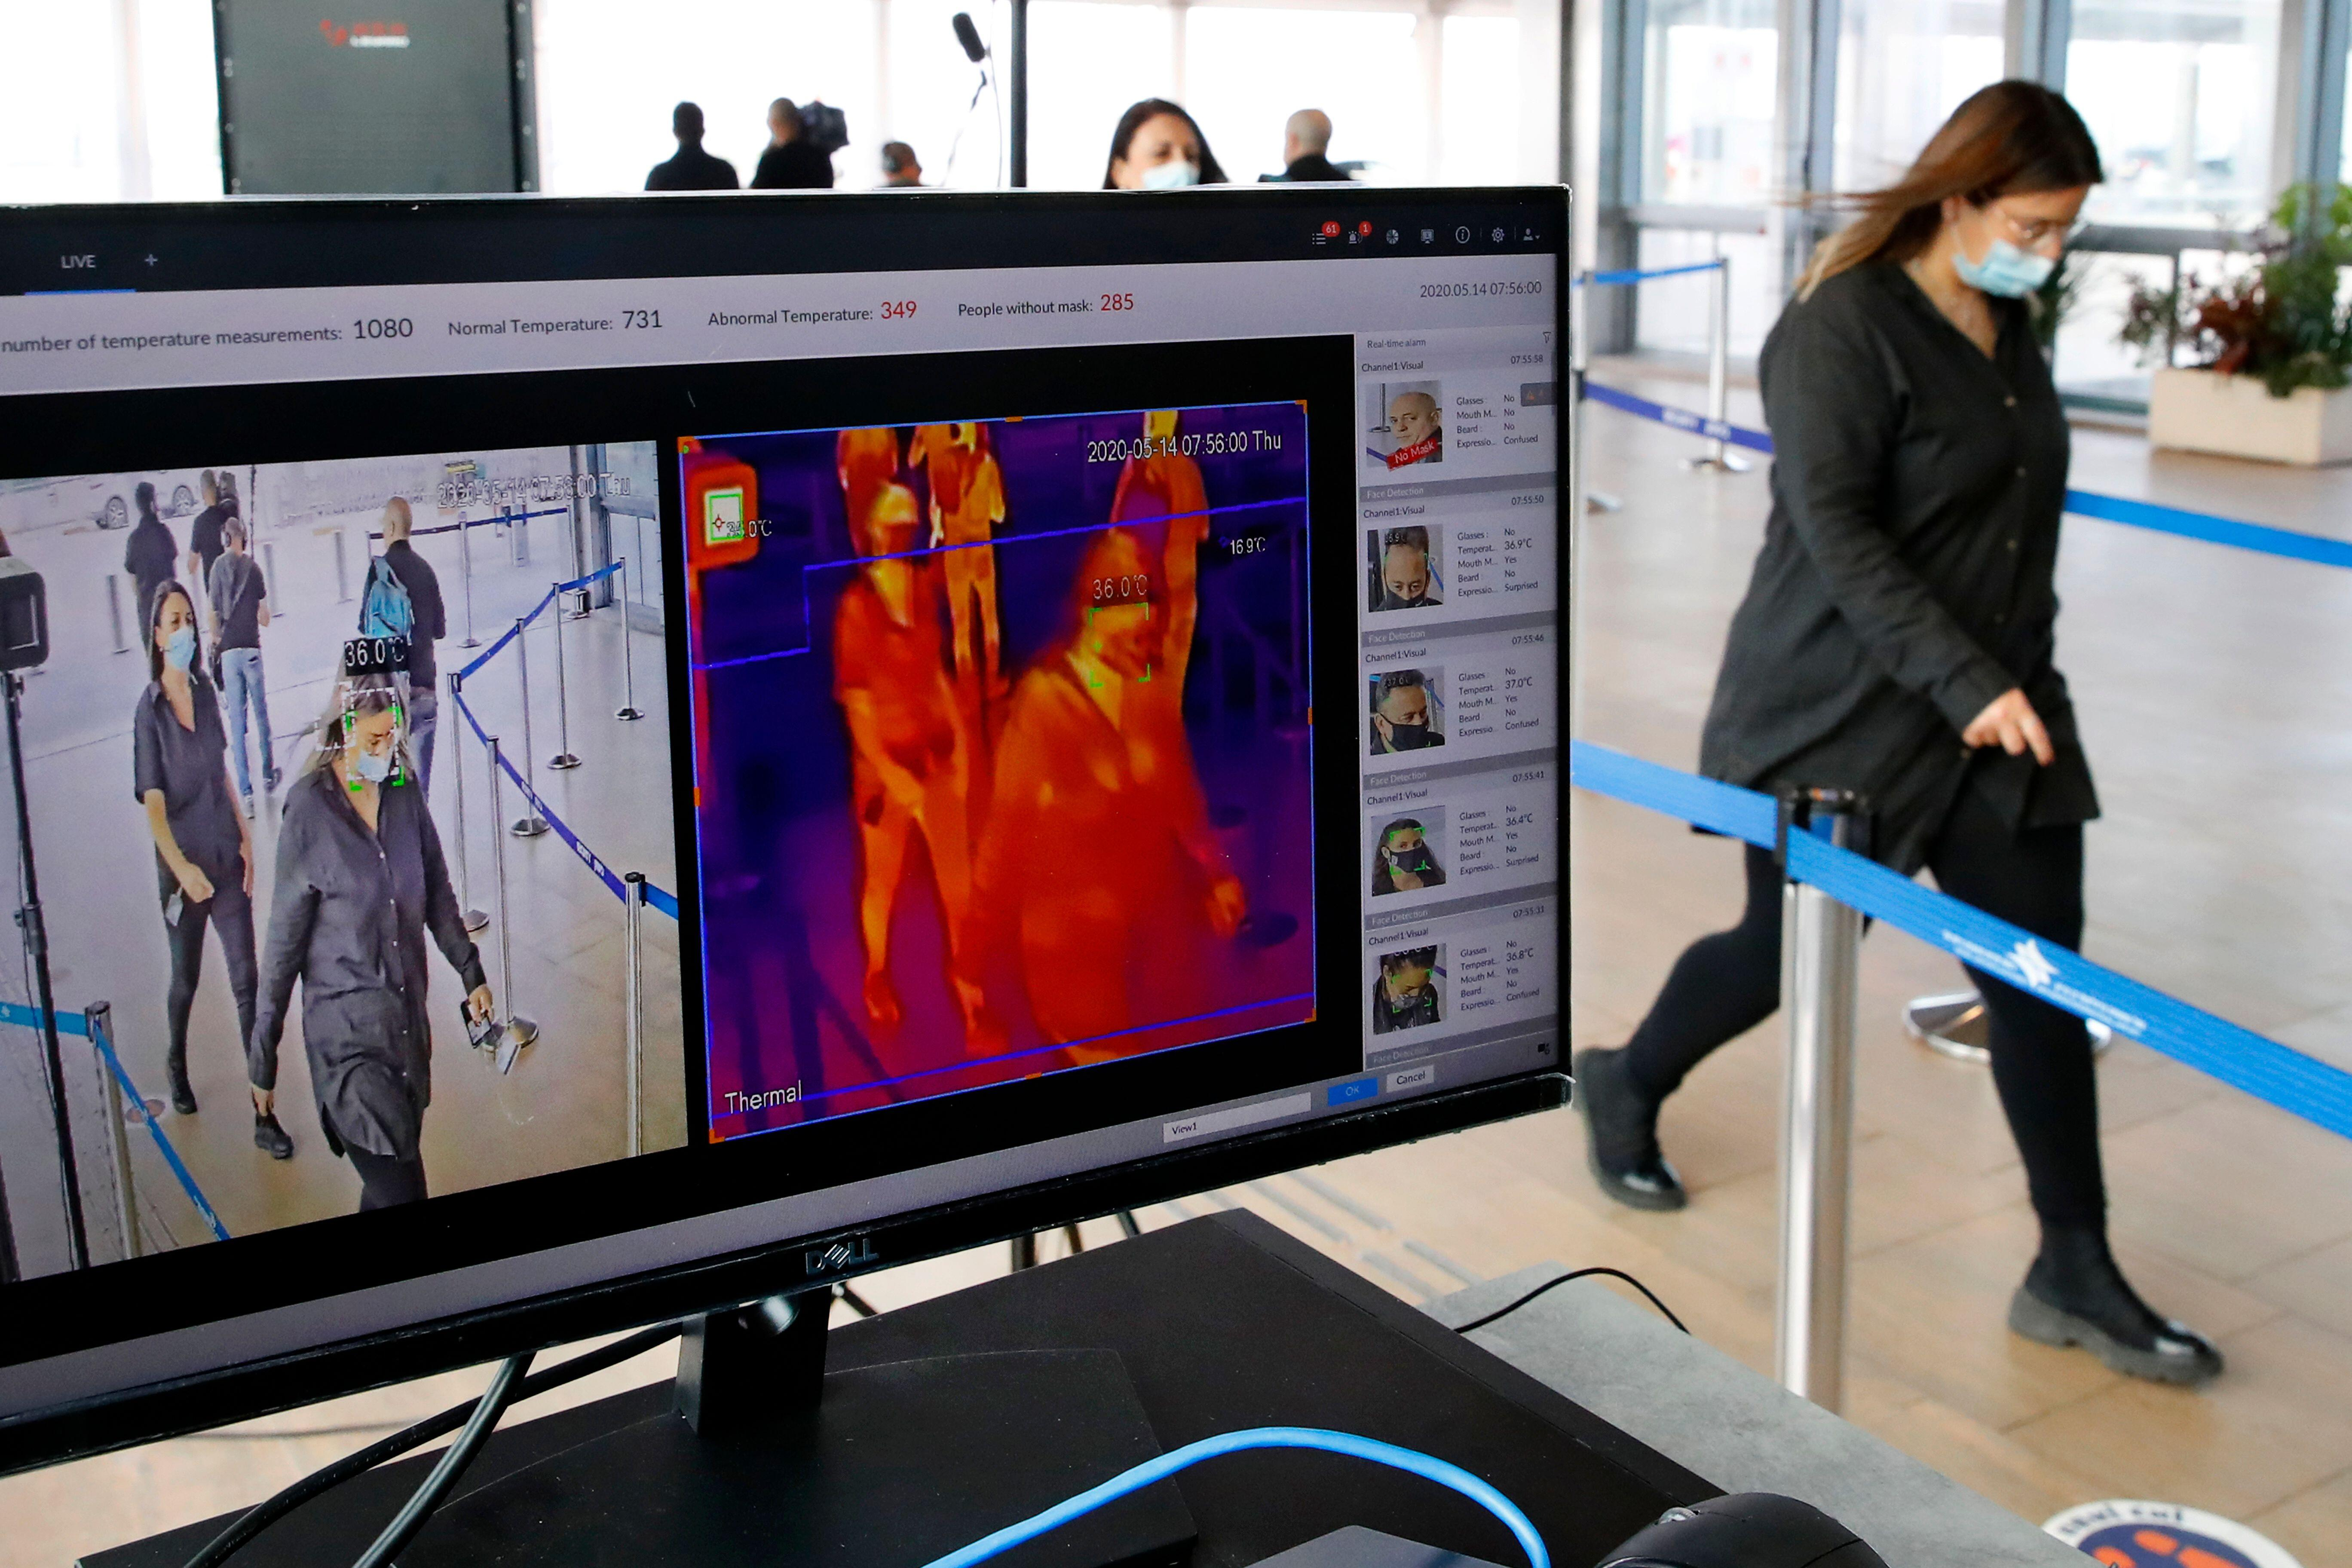 Israel: Body scans at airport